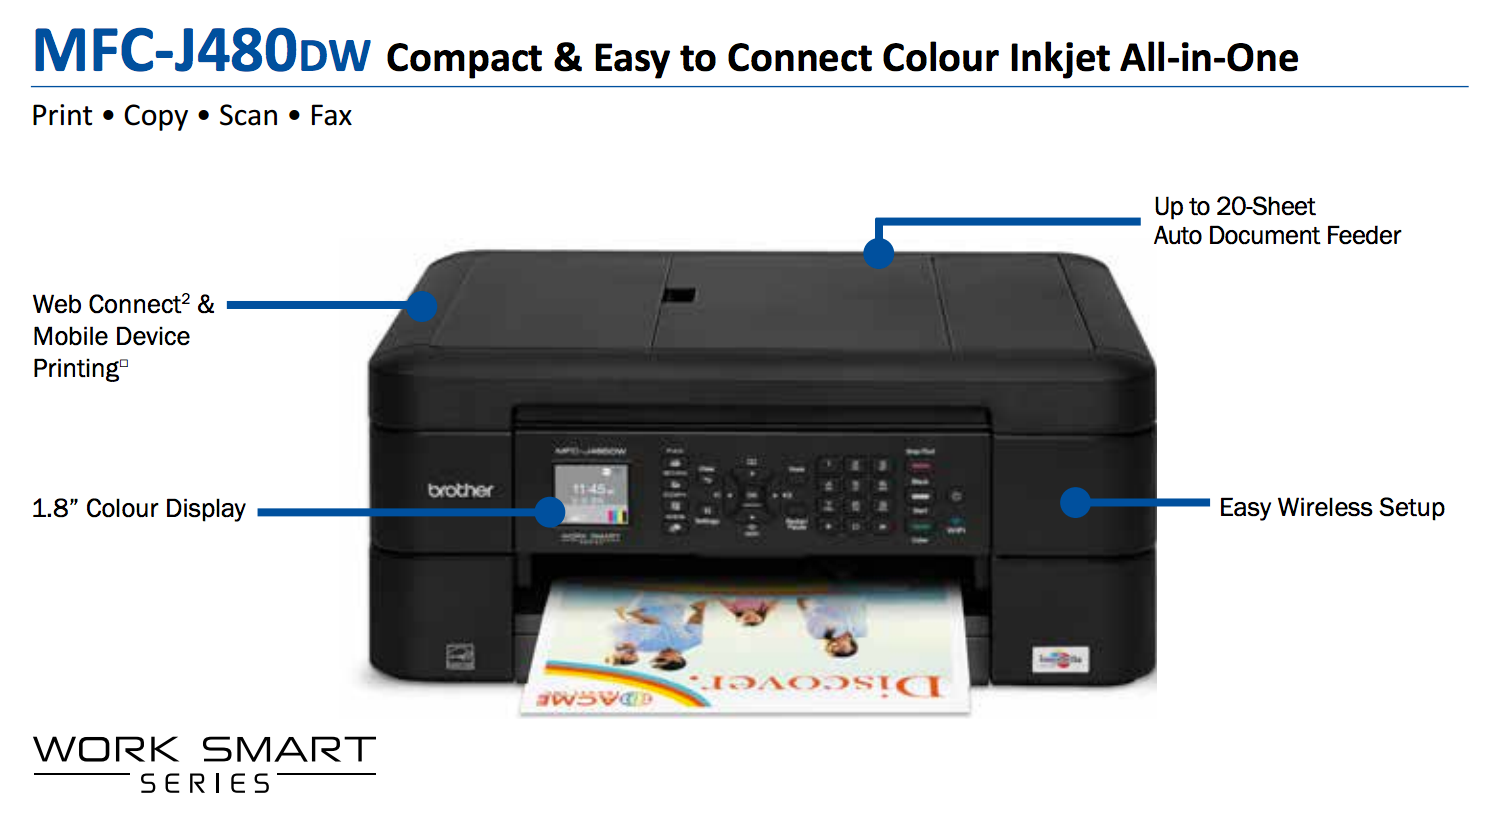 Brother MFC-J480DW All in one Wireless Colour Inkjet Printer Copy Scan Fax | eBay